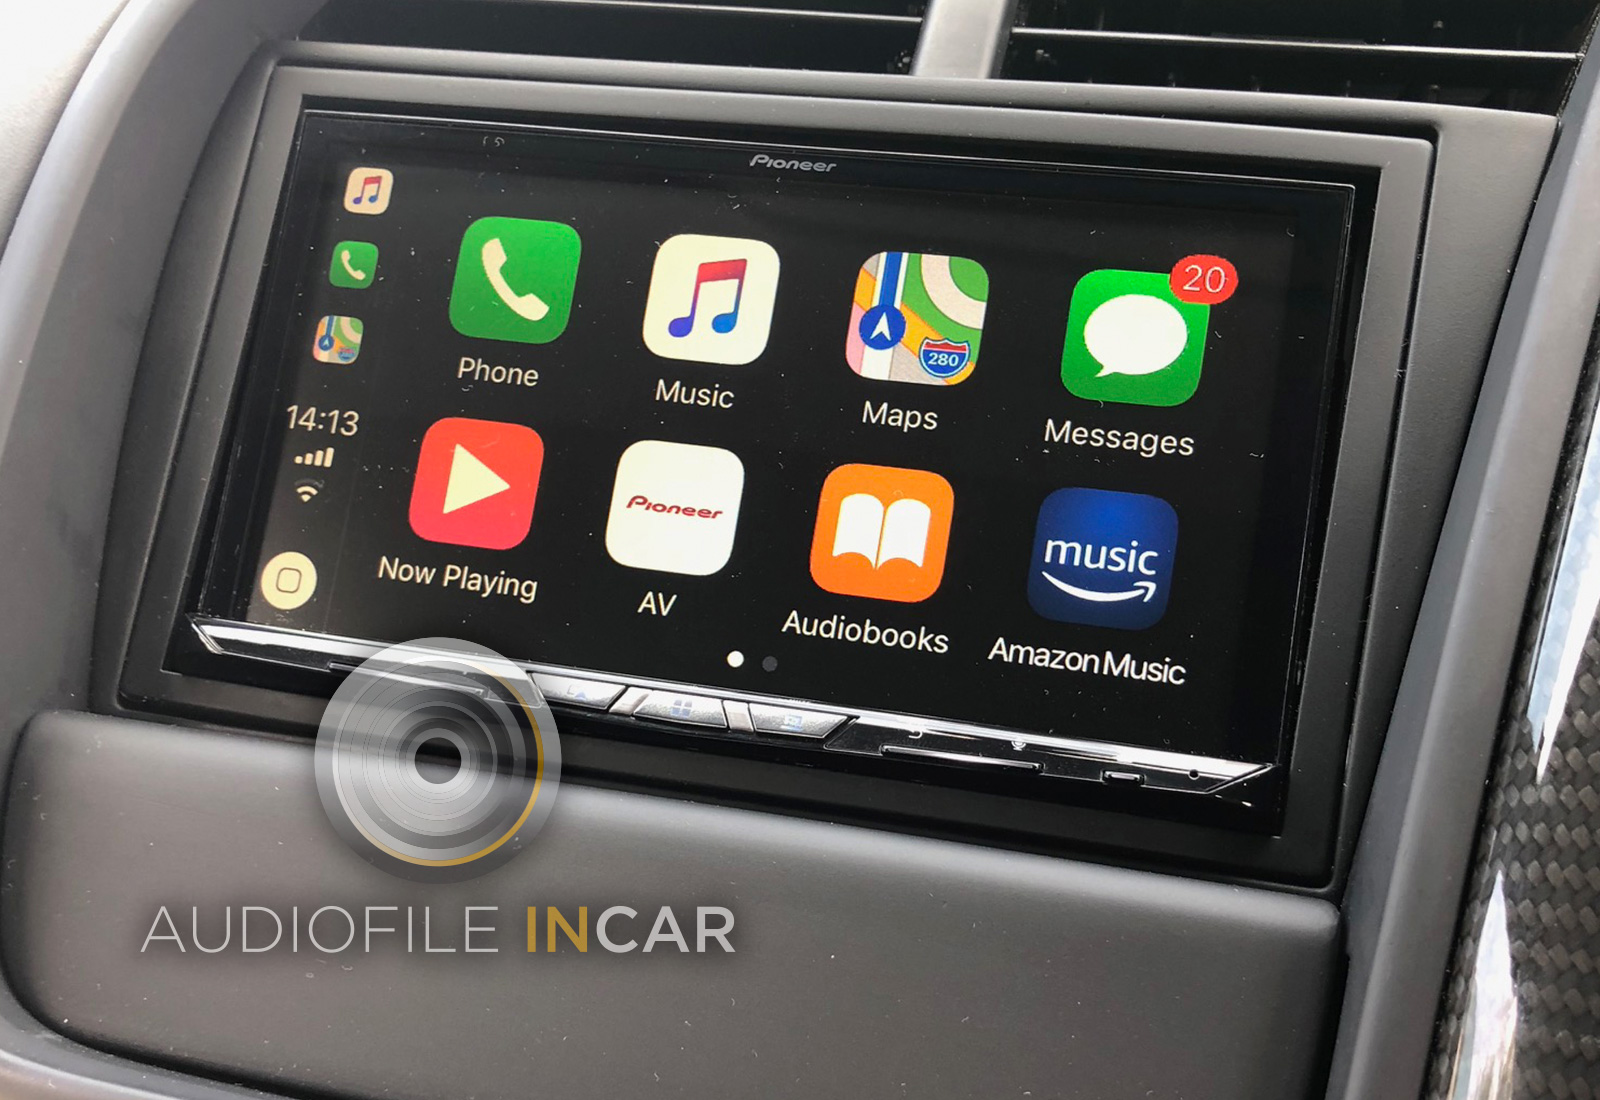 audi r8 sat nav upgrades. Black Bedroom Furniture Sets. Home Design Ideas